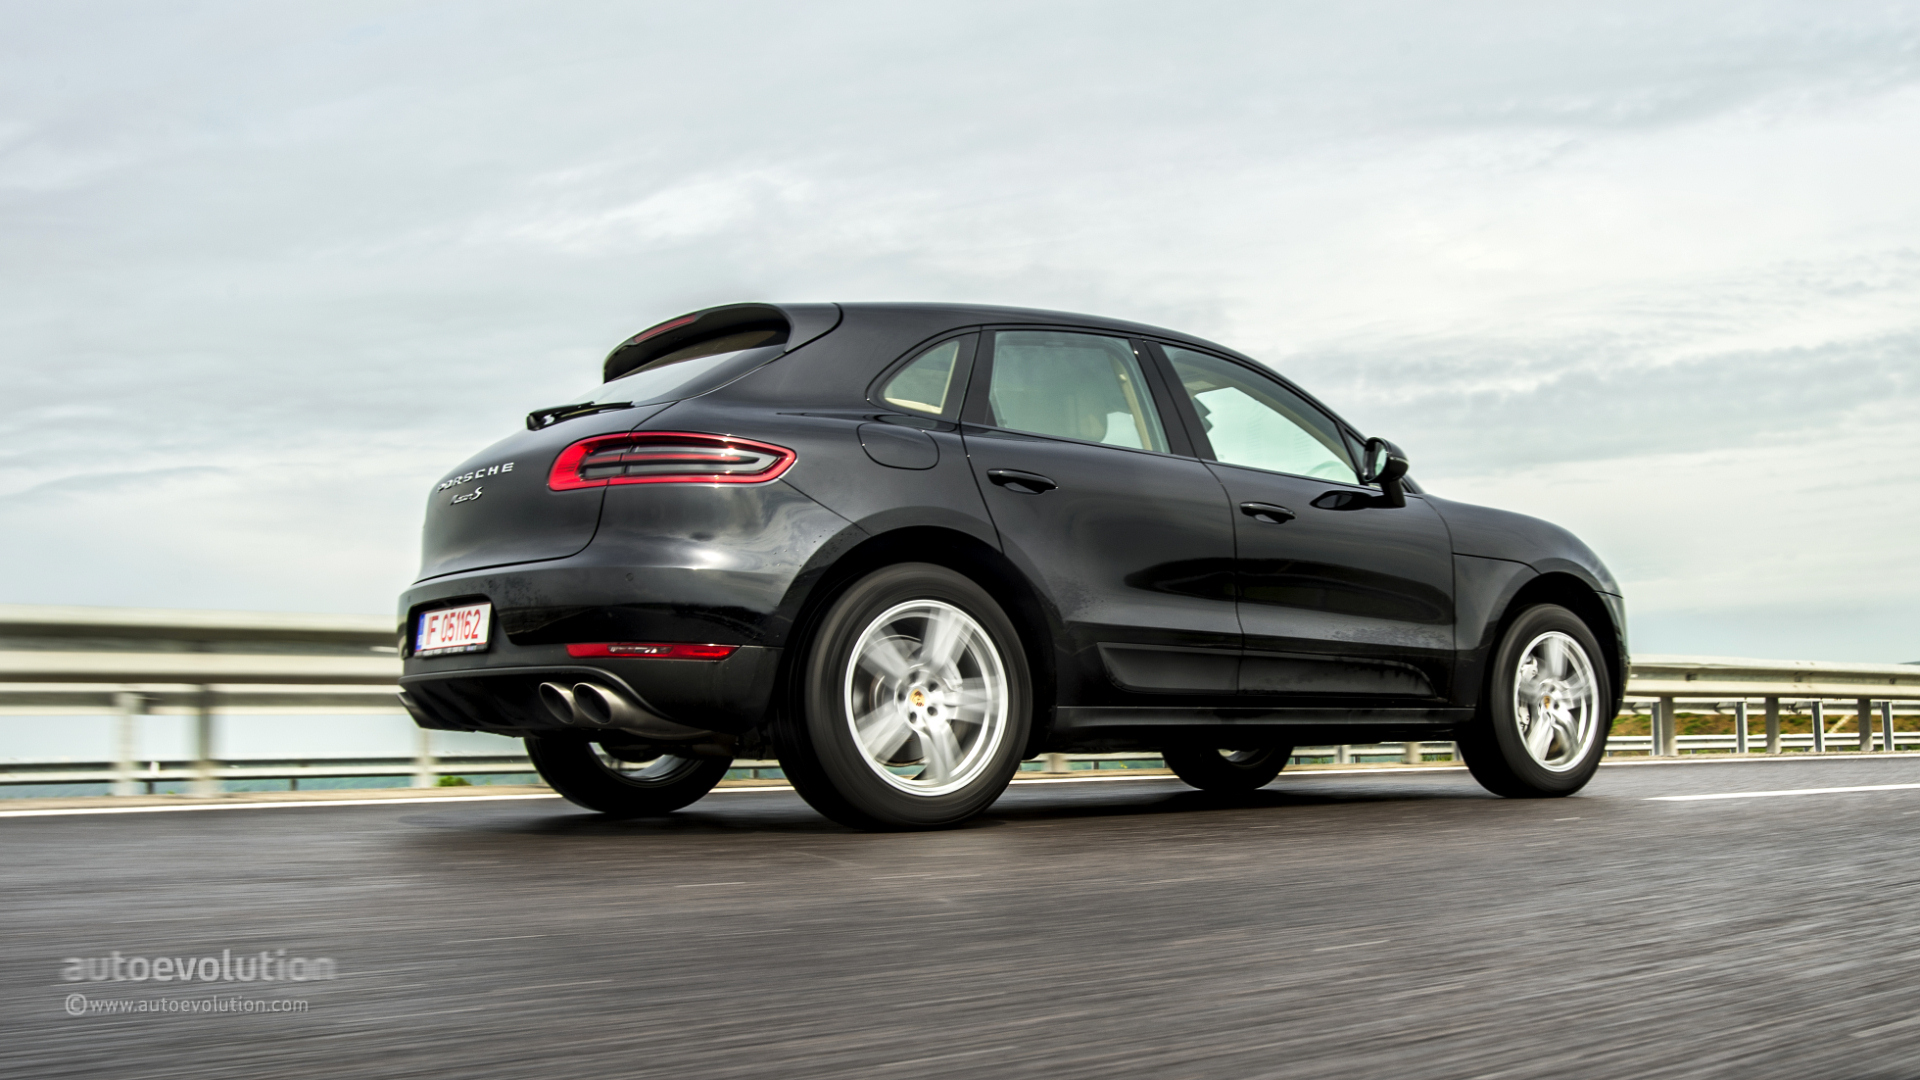 porsche macan s review page 2 autoevolution. Black Bedroom Furniture Sets. Home Design Ideas